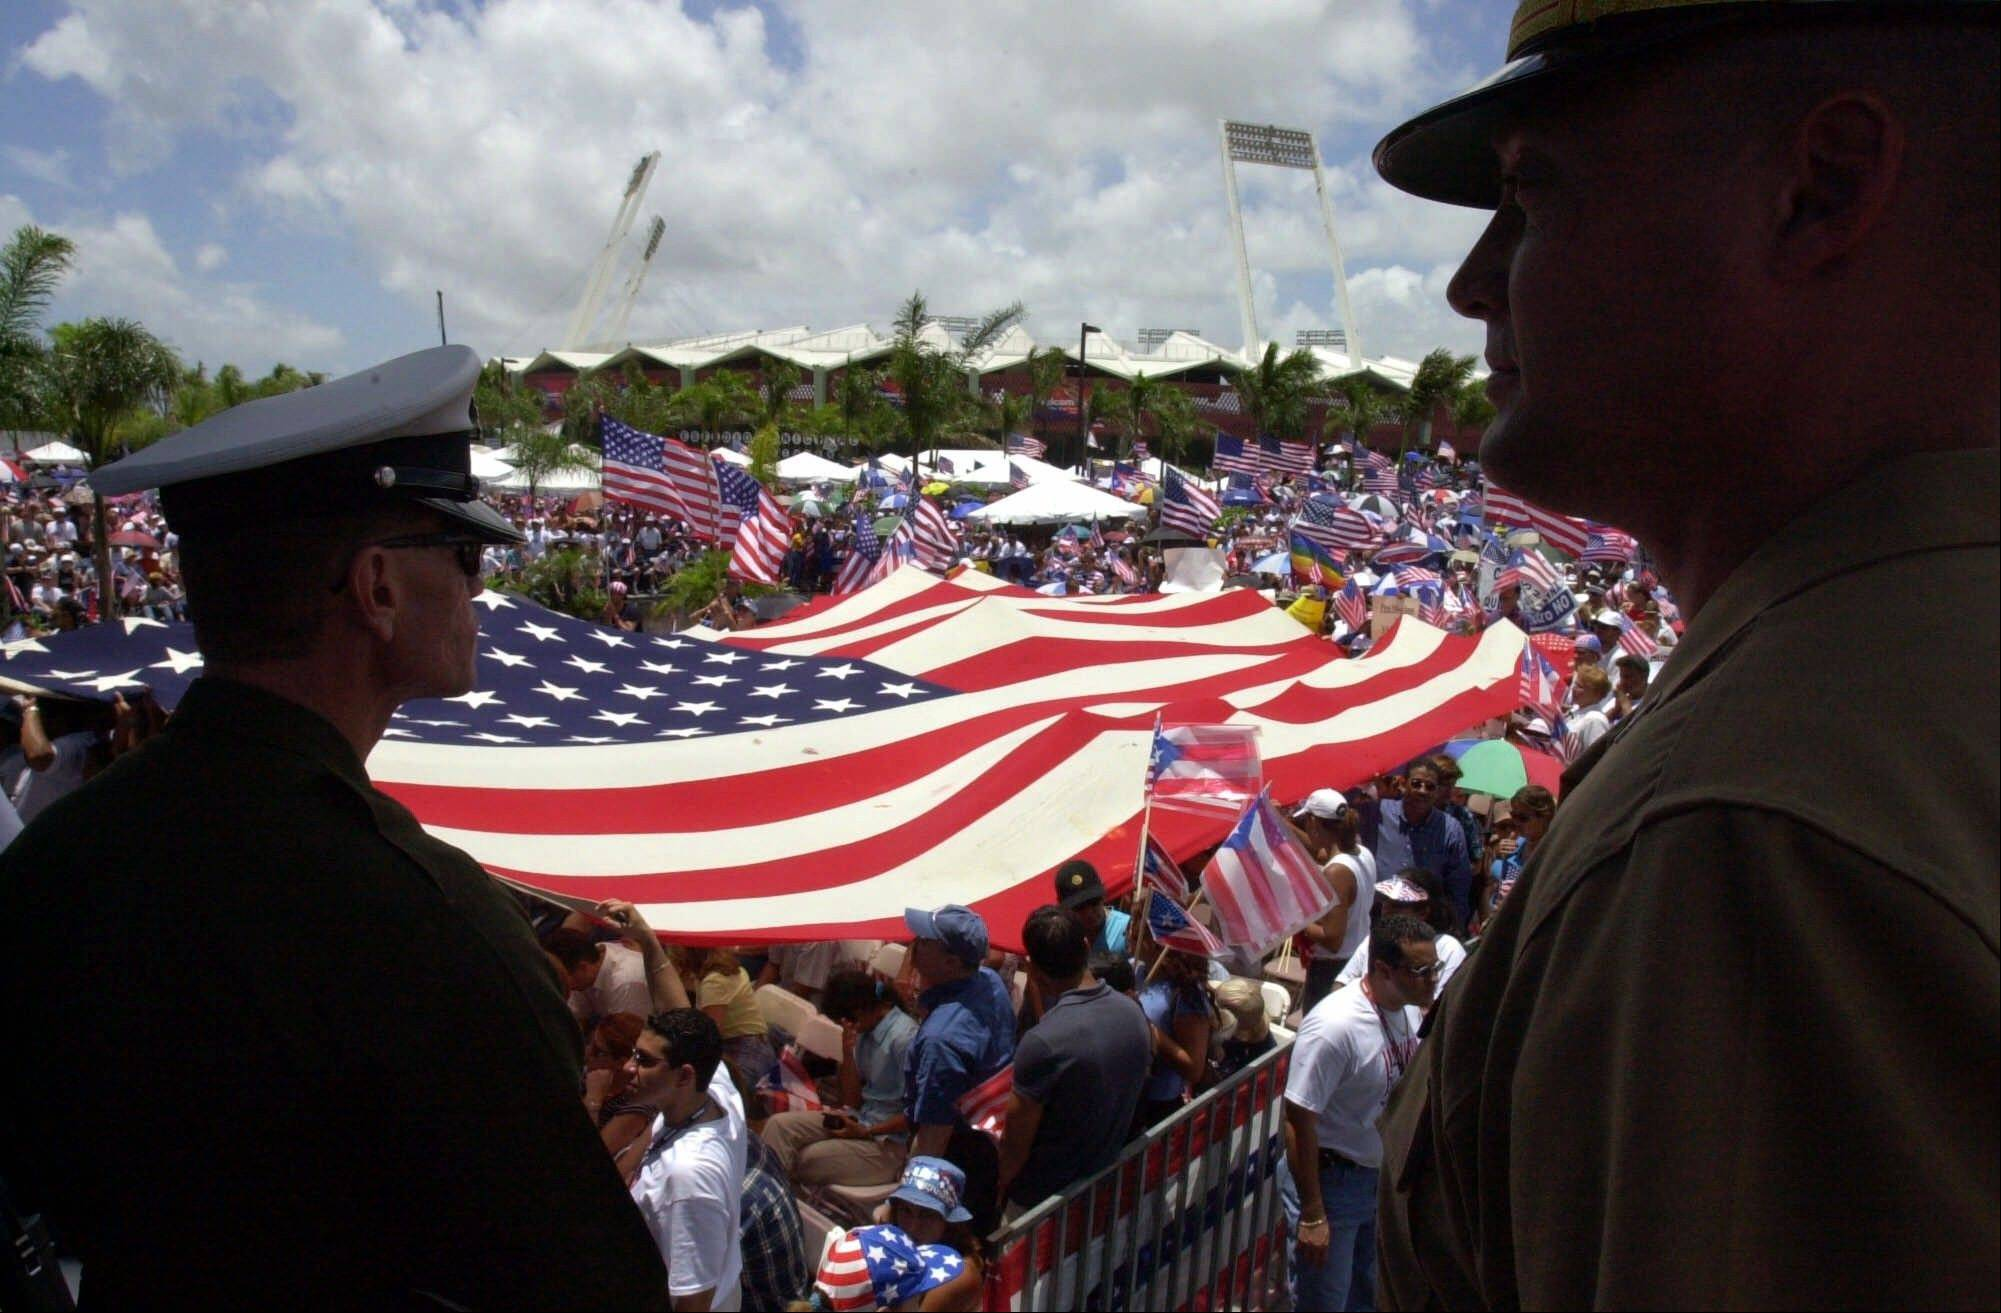 Marine Capt. Scott Madziarczyk of Chicago, right, looks over a crowd of Puerto Ricans celebrating the United States of America's Independence Day in San Juan. Although Puerto Rico was removed from the list of territories kept by the U.N. Special Committee on Decolonization when it became a U.S. commonwealth in 1953, the committee annually adopts a Cuban motion calling for Puerto Rico's self-determination.